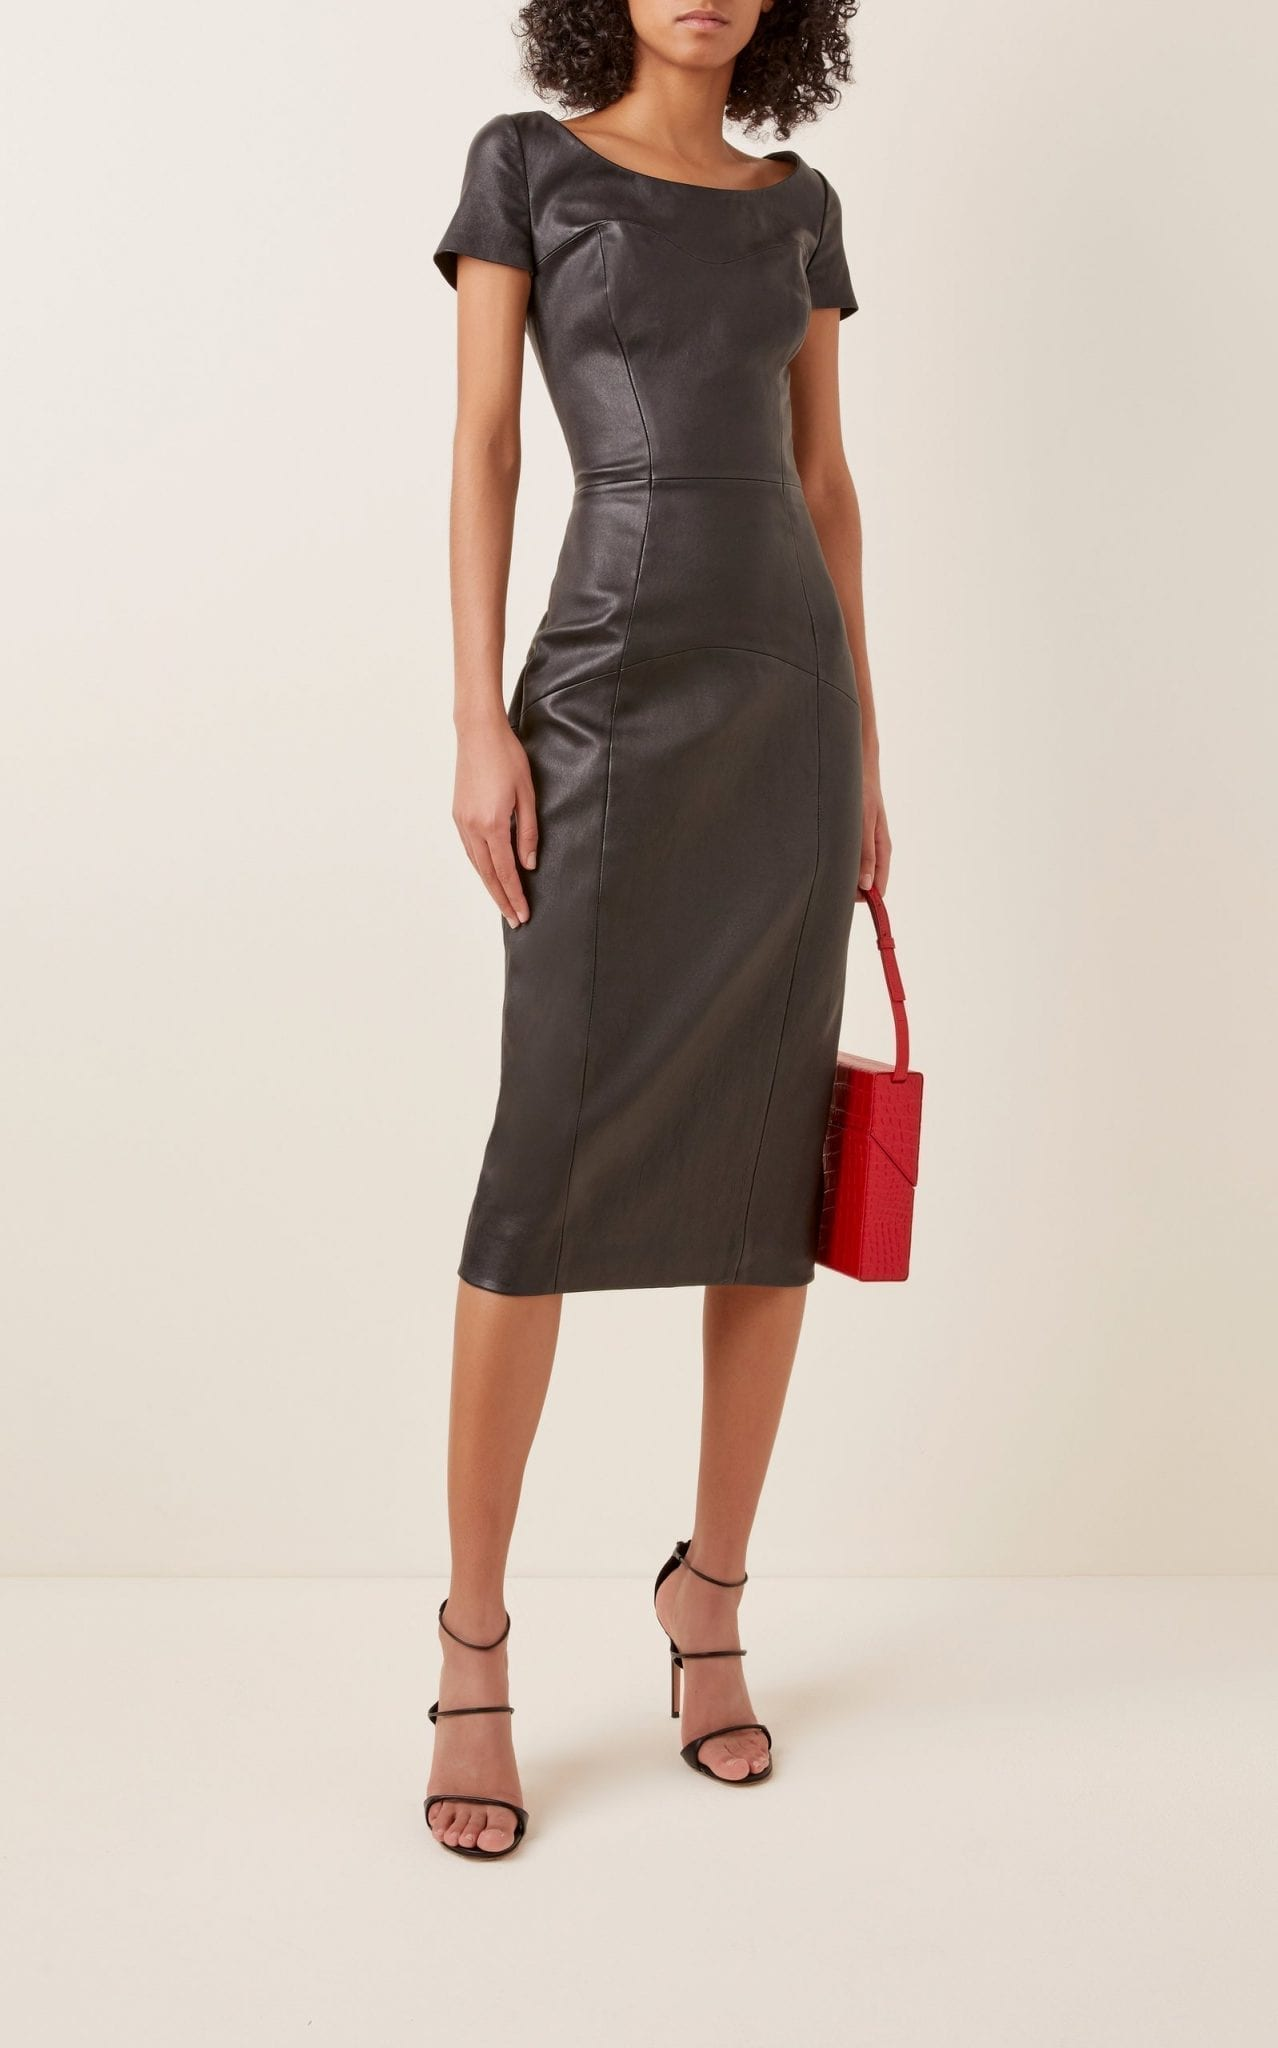 LENA HOSCHEK Pleasure Leather Midi Dress